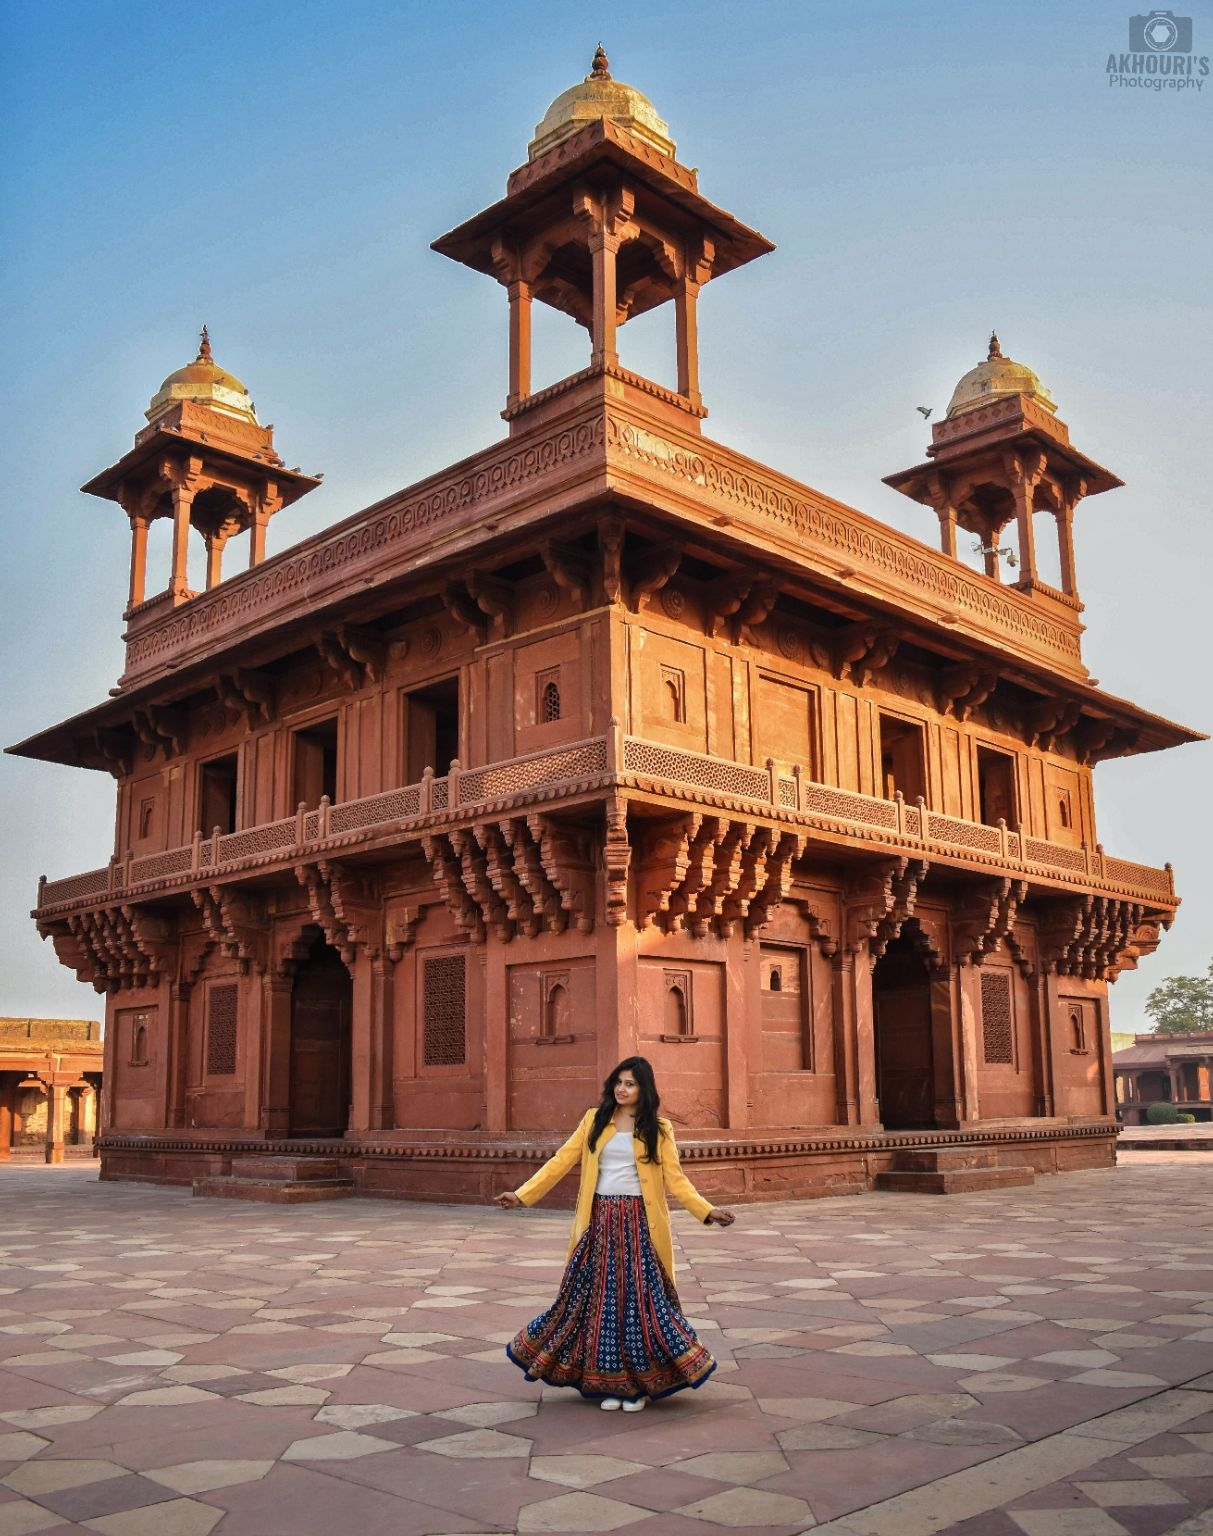 Photo of Jodha Bai's Palace By Saurav Akhouri